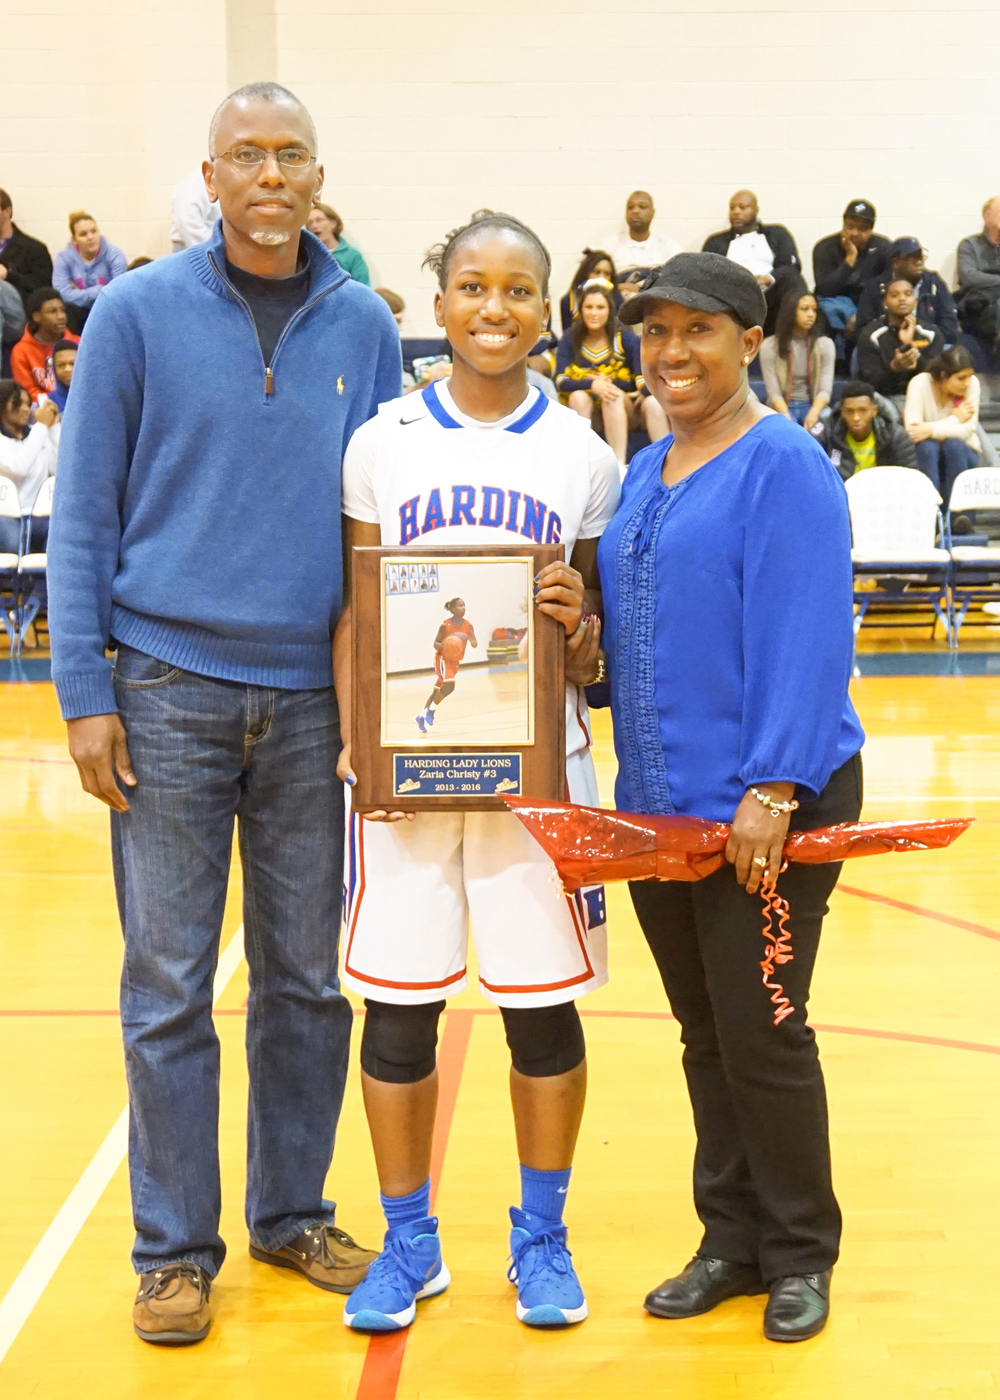 Feb12 SeniorNightBasketball01.jpg